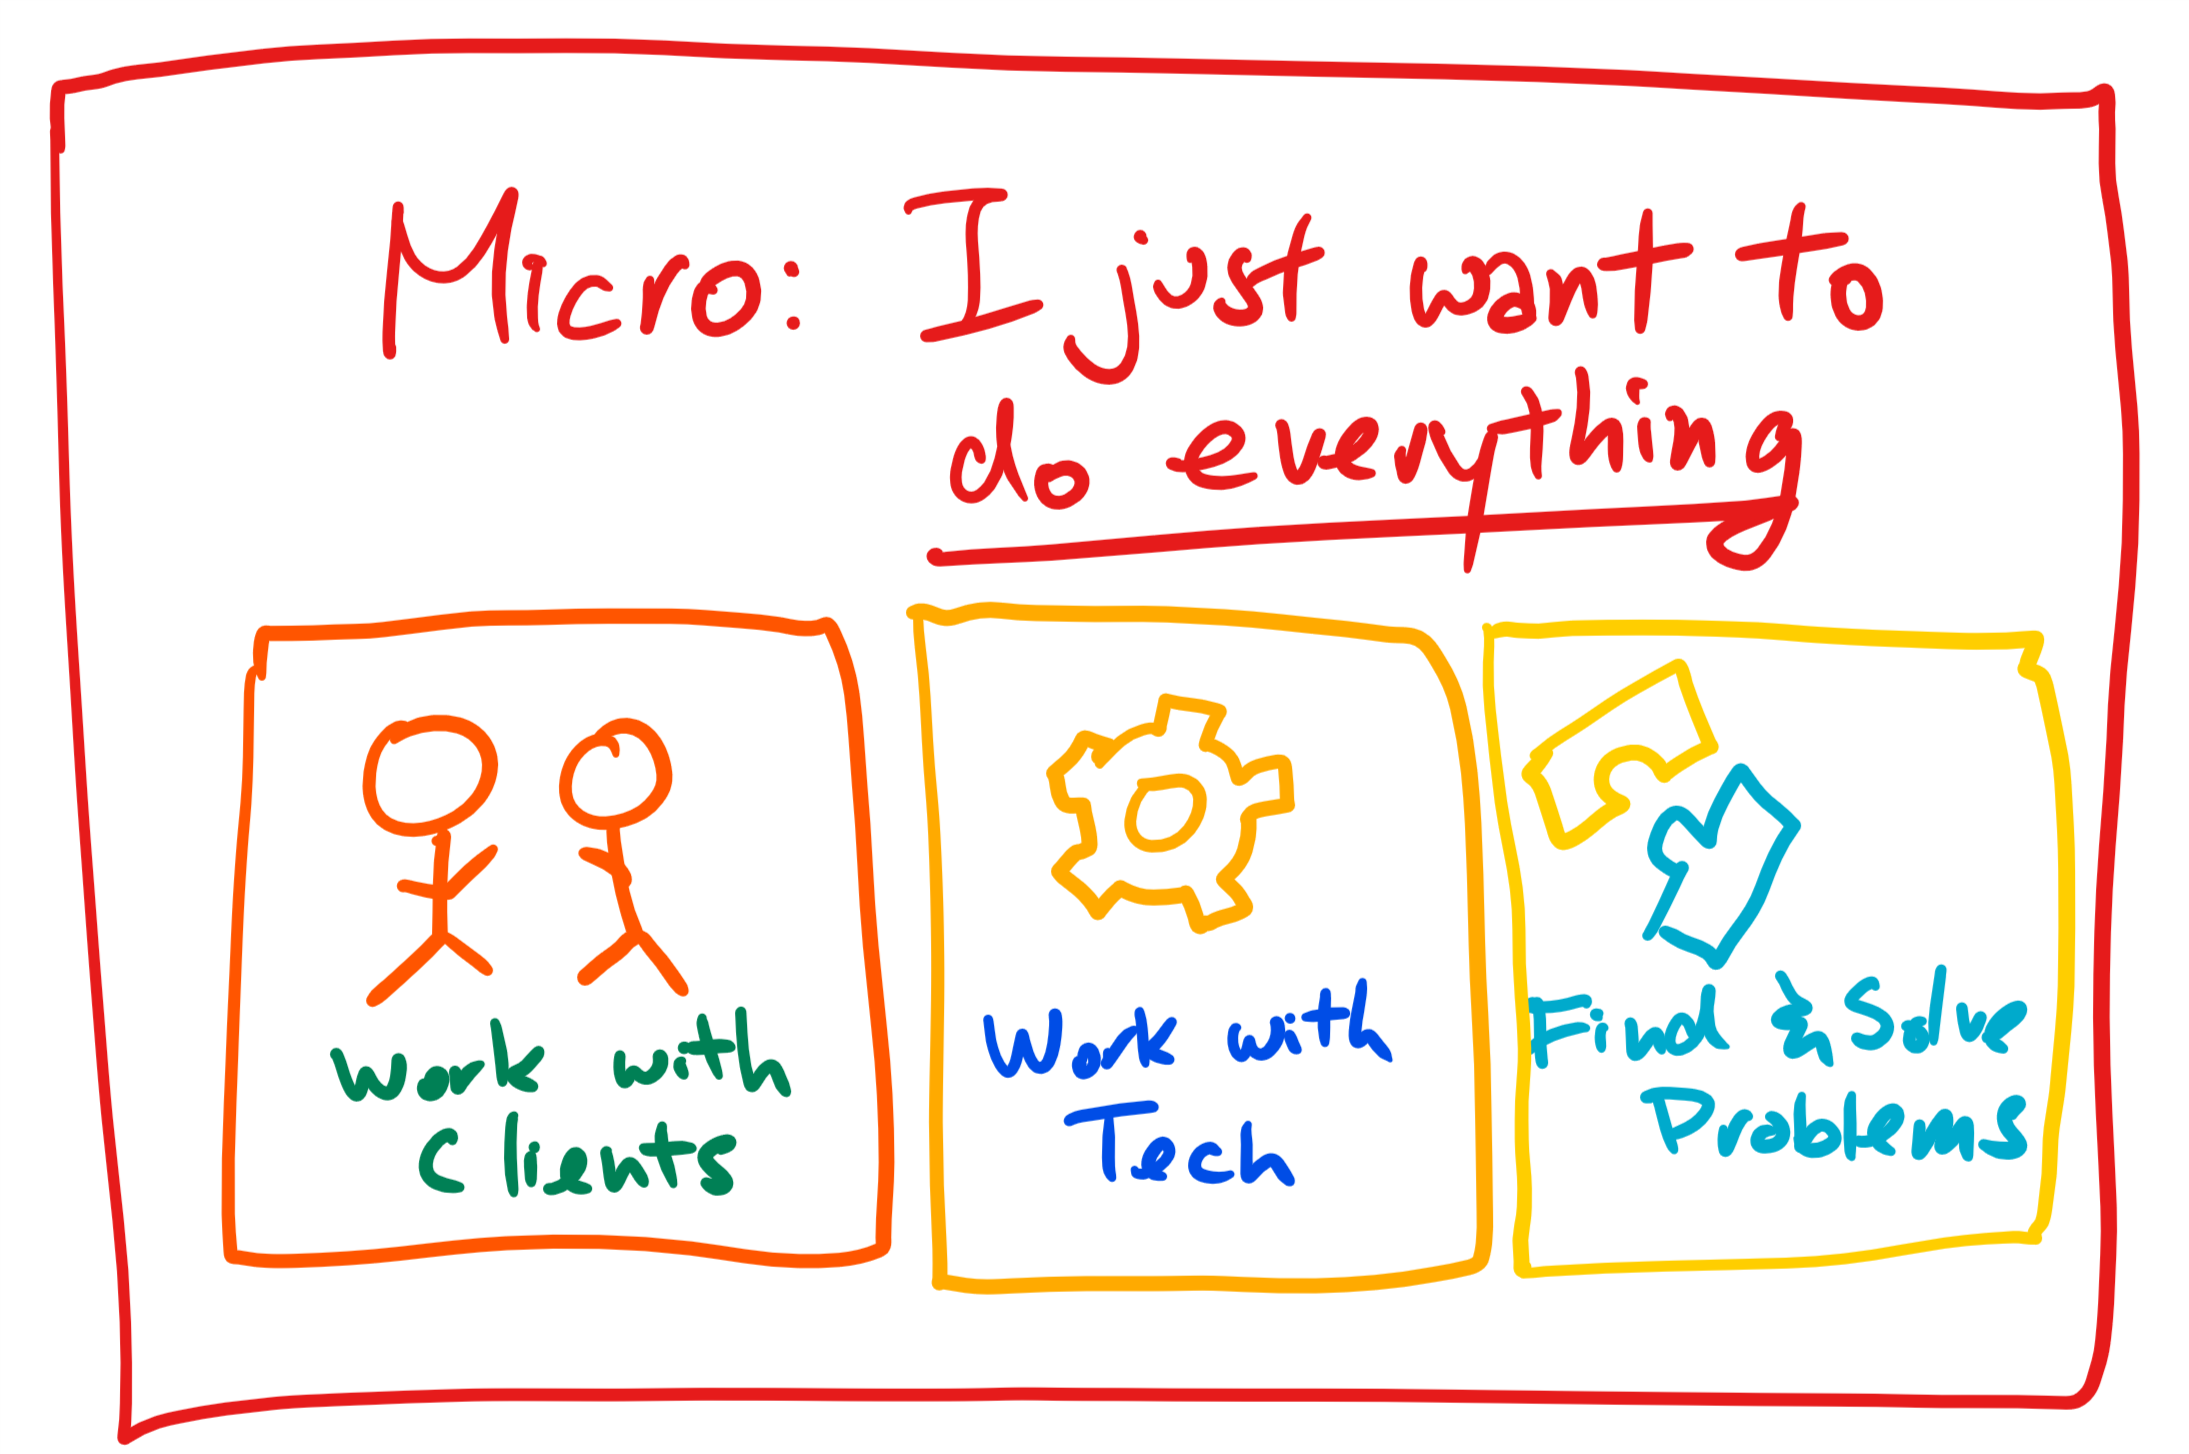 passionate about professional services 2.png